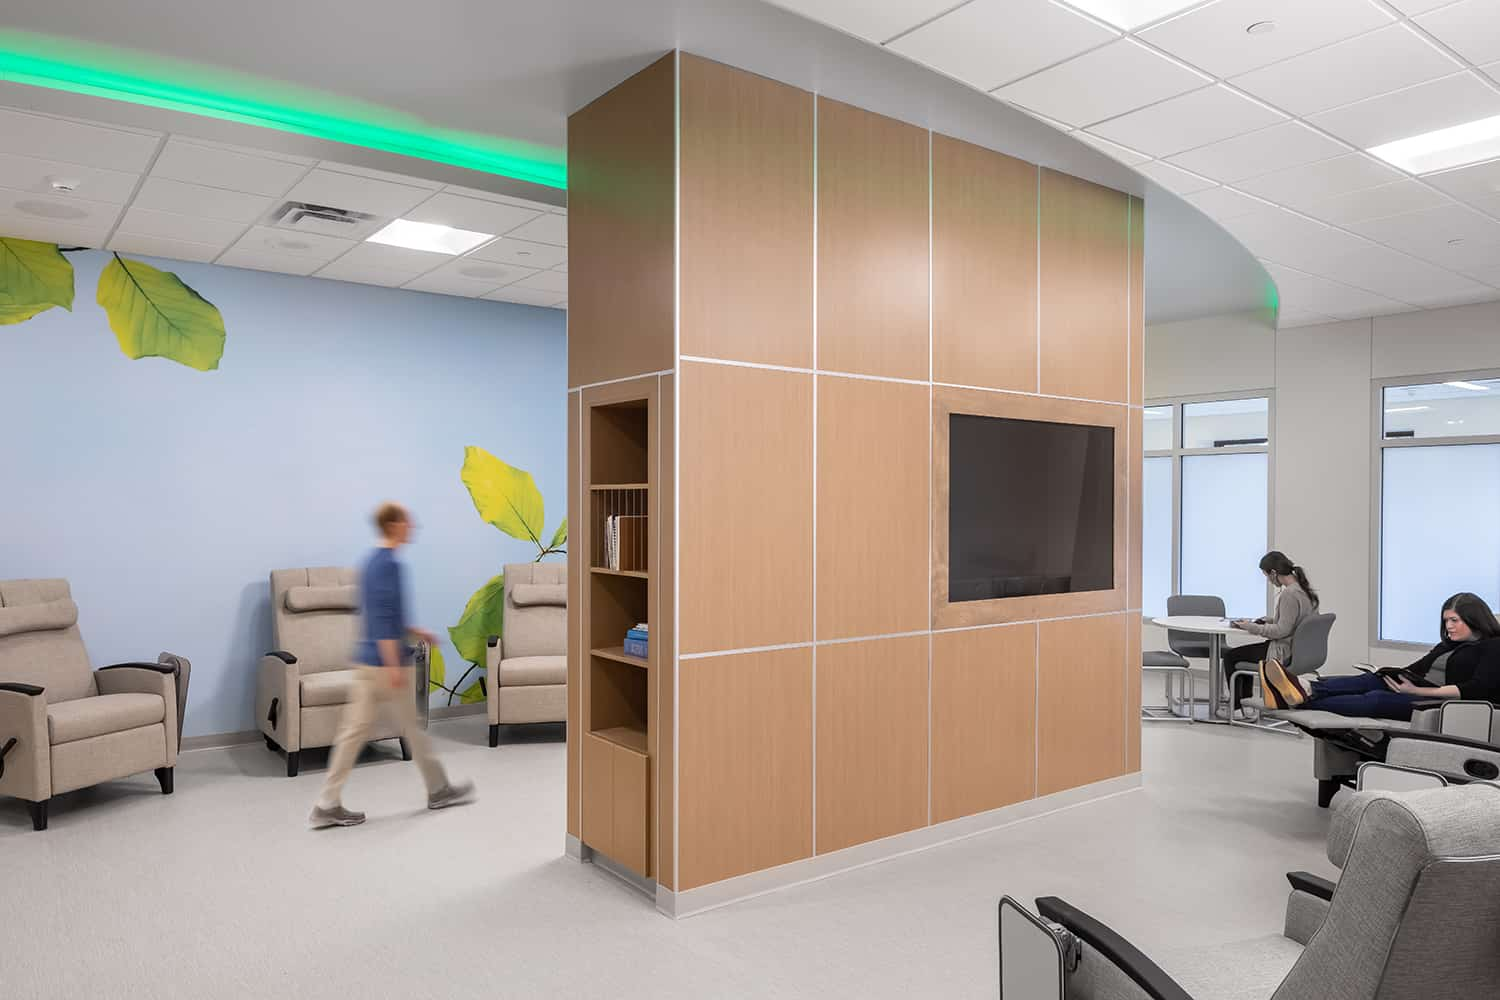 Group therapy space with technology and reading resources and comfortable furniture.